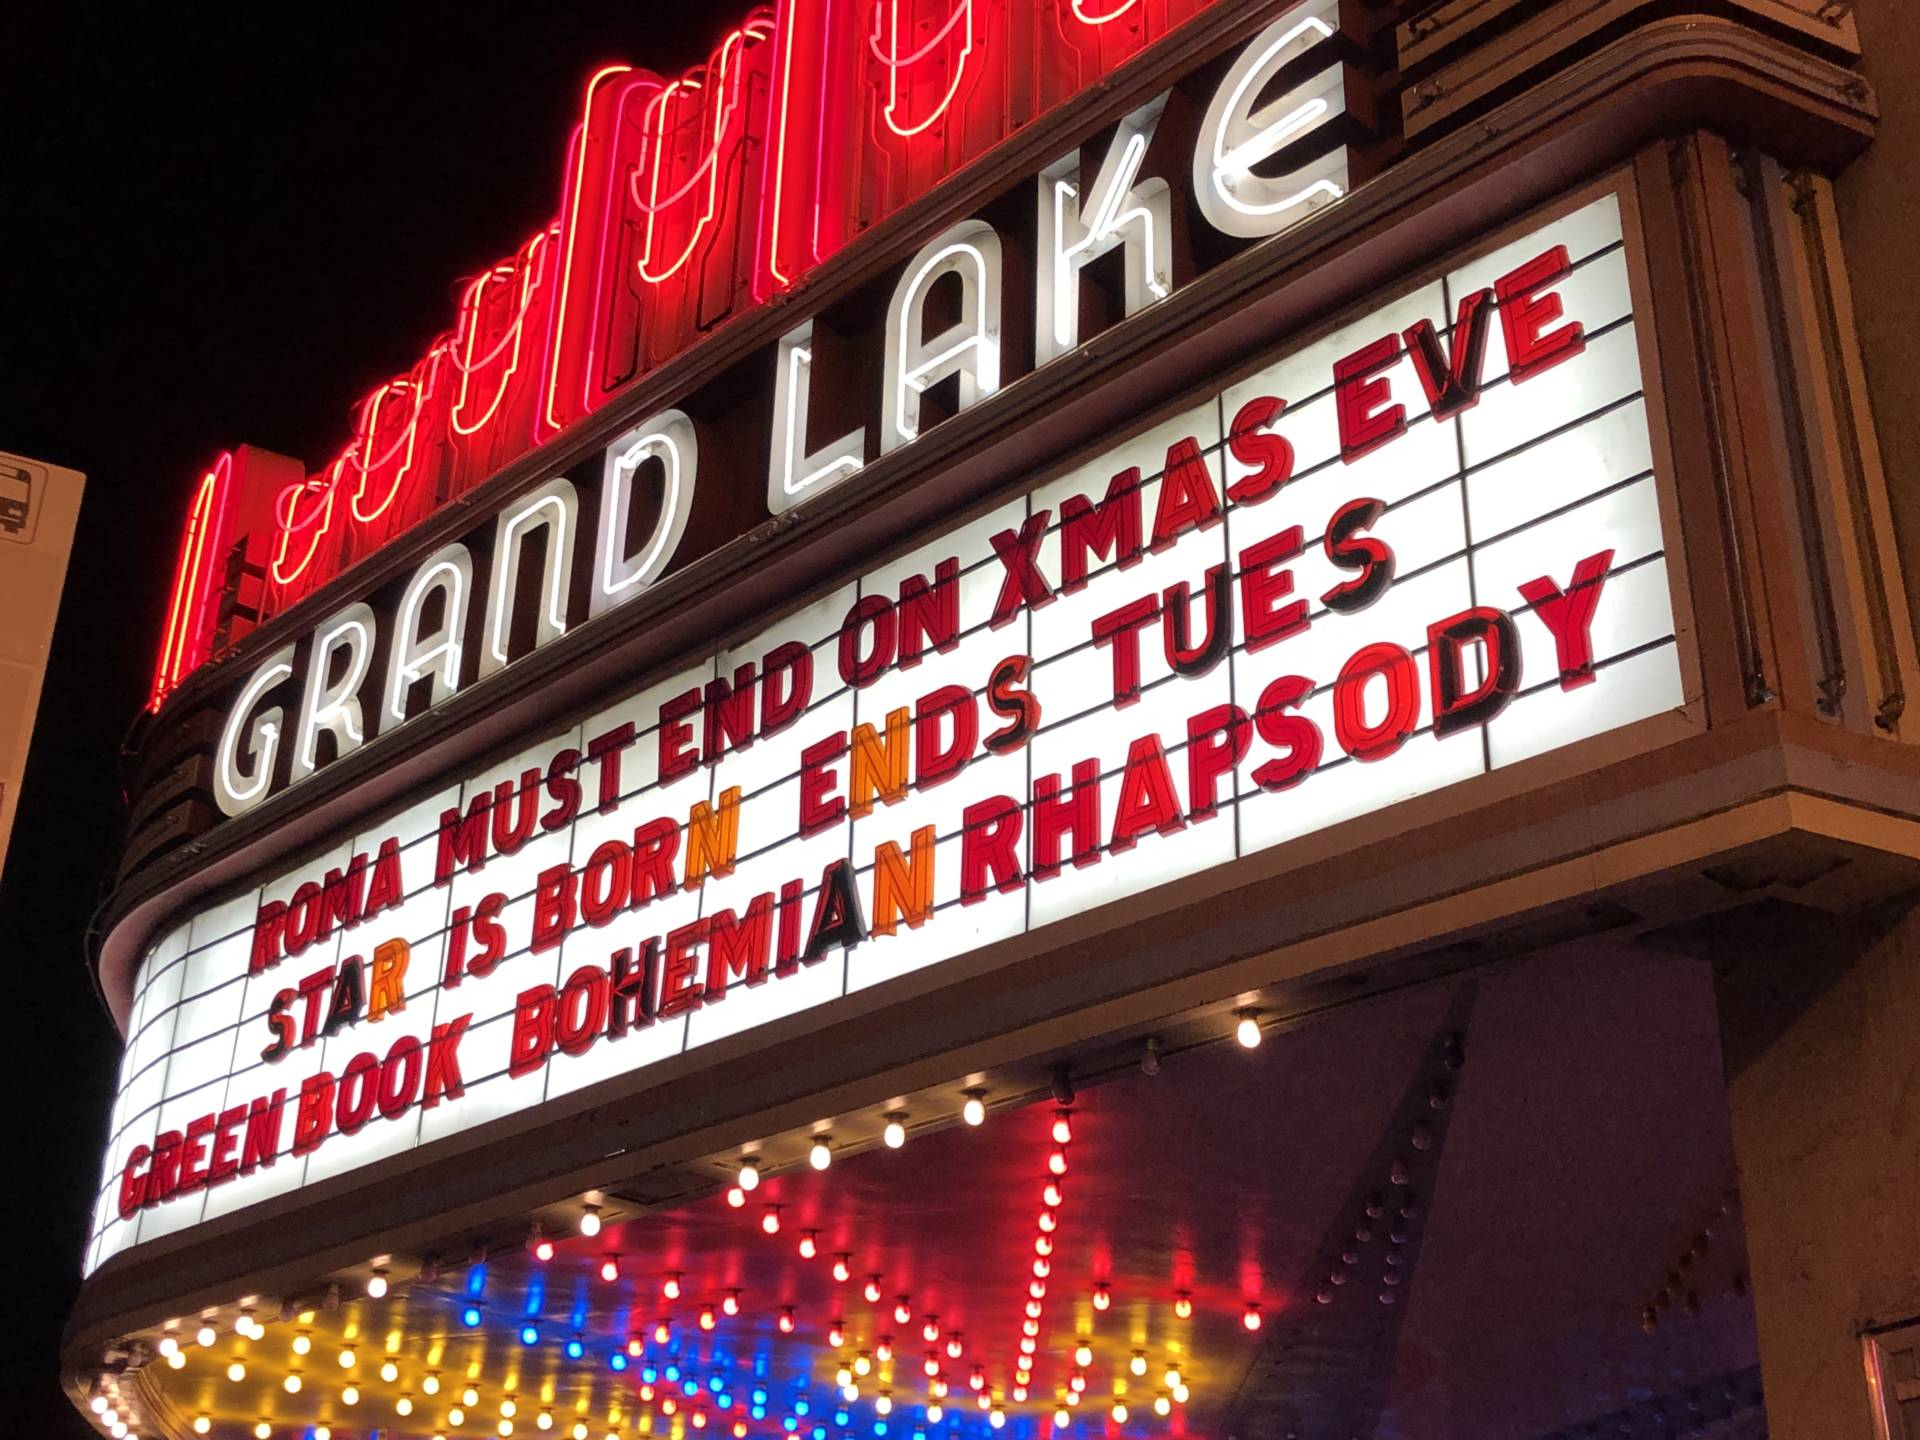 The Grand Lake Theatre has been a community staple for moviegoers in Oakland since 1926. Photo courtesy the author.